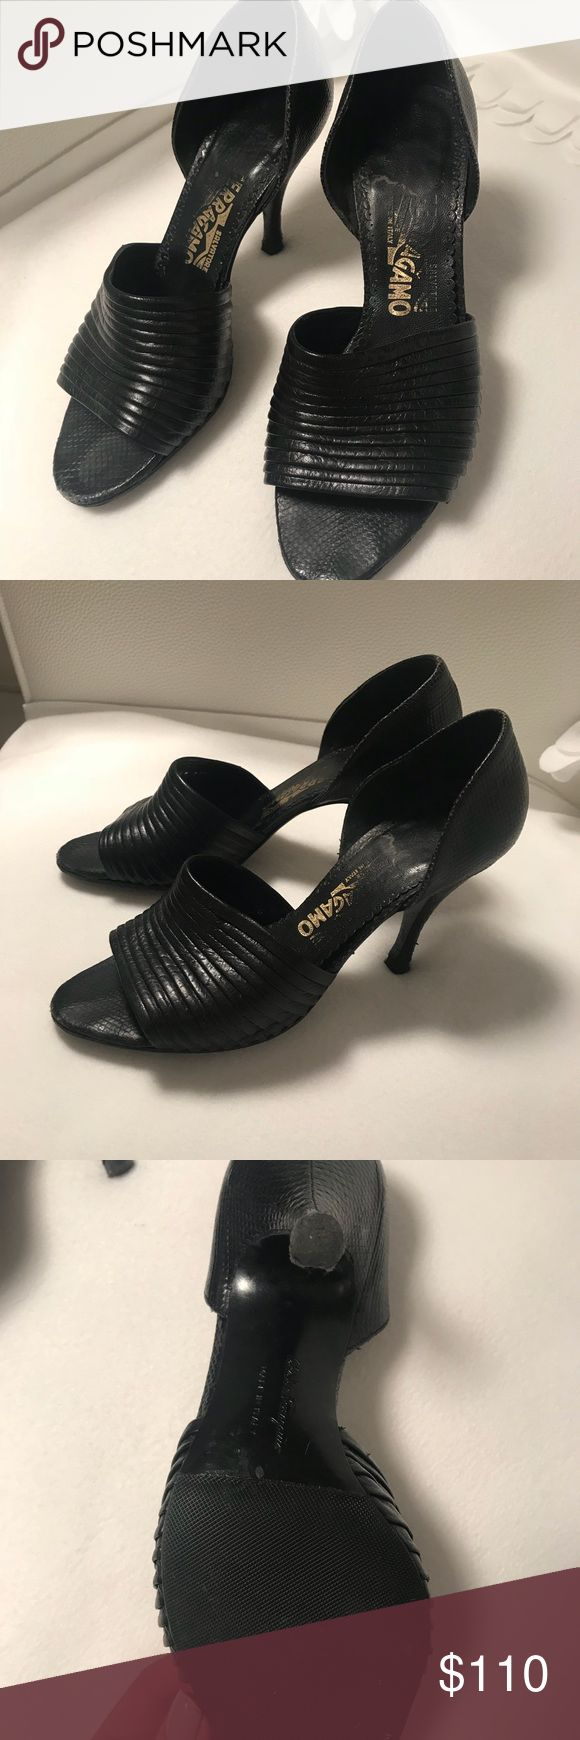 Like New Ferragamo Feminine D'Orsay Pump Beautiful great condition Ferragamo pumps. Comfortable to walk in and new heels and sole protector.   Gently worn and like new.   Cleaning closet and no room anymore.   🖤🖤 Salvatore Ferragamo Shoes Heels